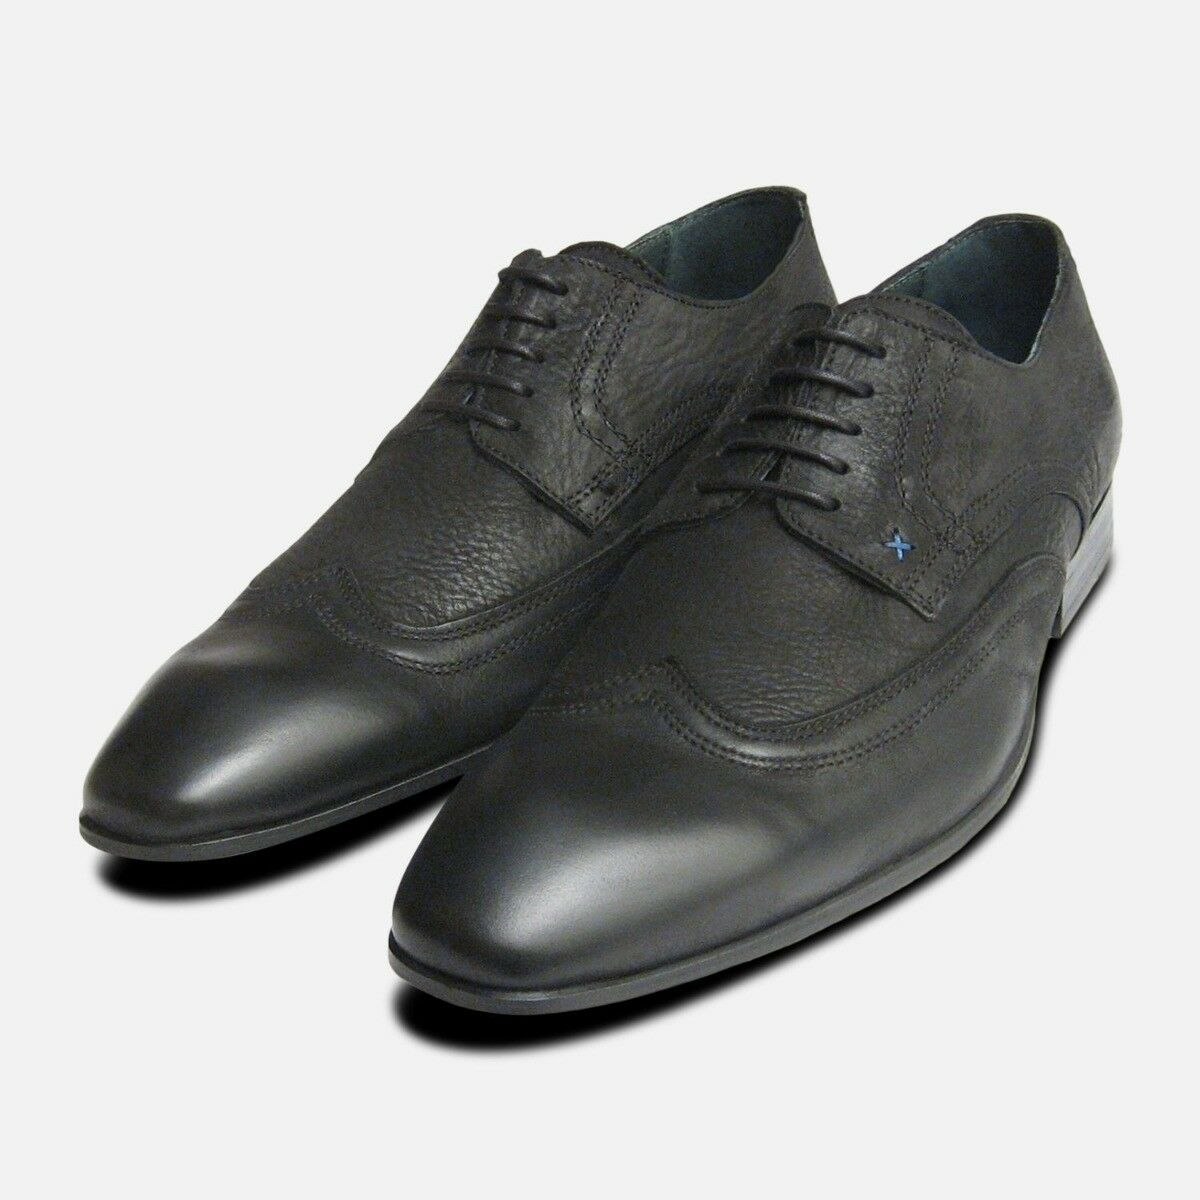 Black Waxy Lace Up Shoes for Men by Designer Brand Exceed